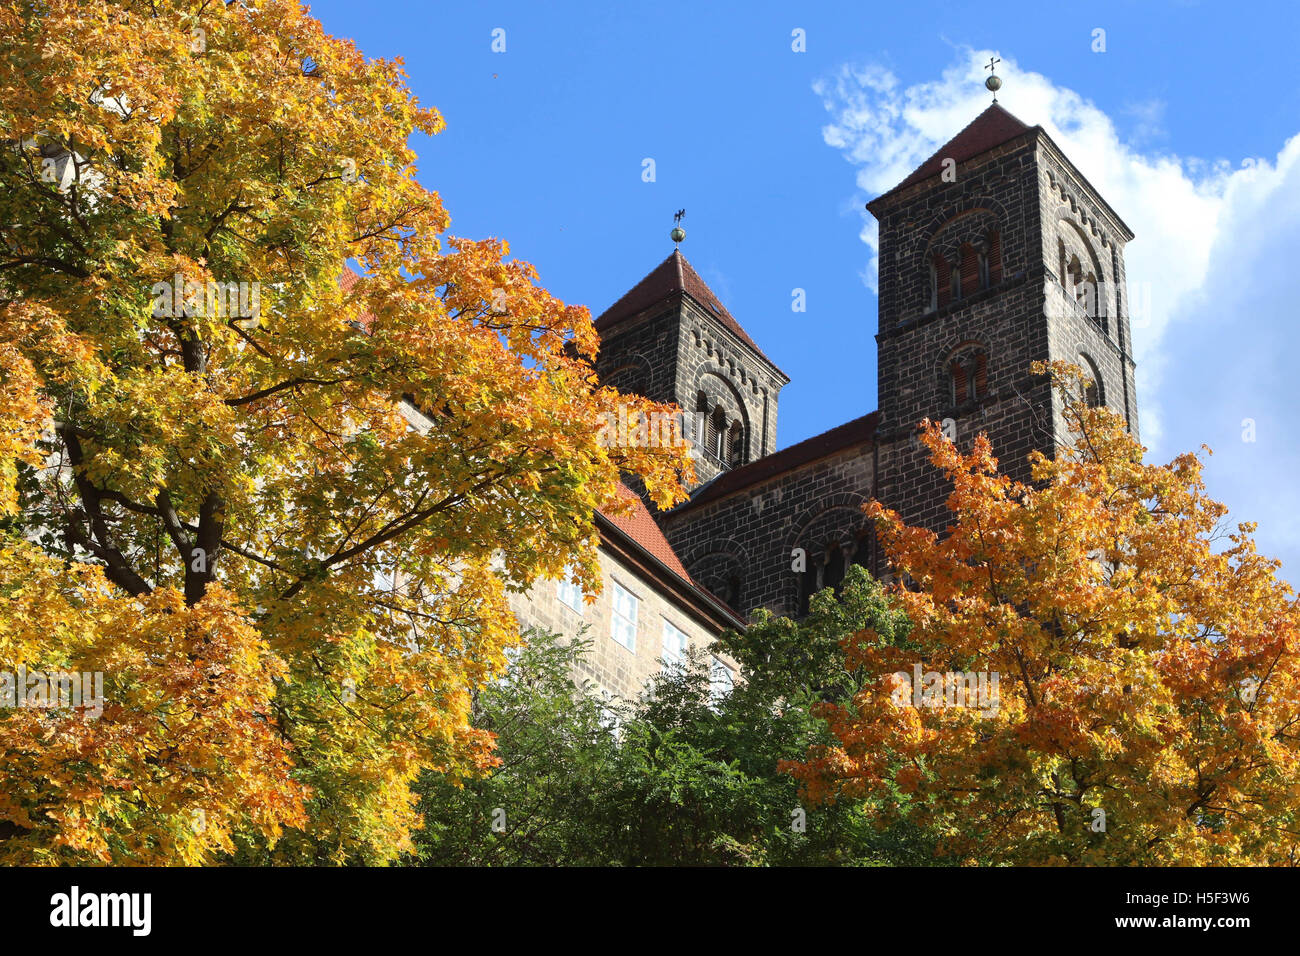 Quedlinburg, Germany. 18th Oct, 2016. The collegiate church St. Servatius in Quedlinburg, Germany, 18 October 2016. - Stock Image